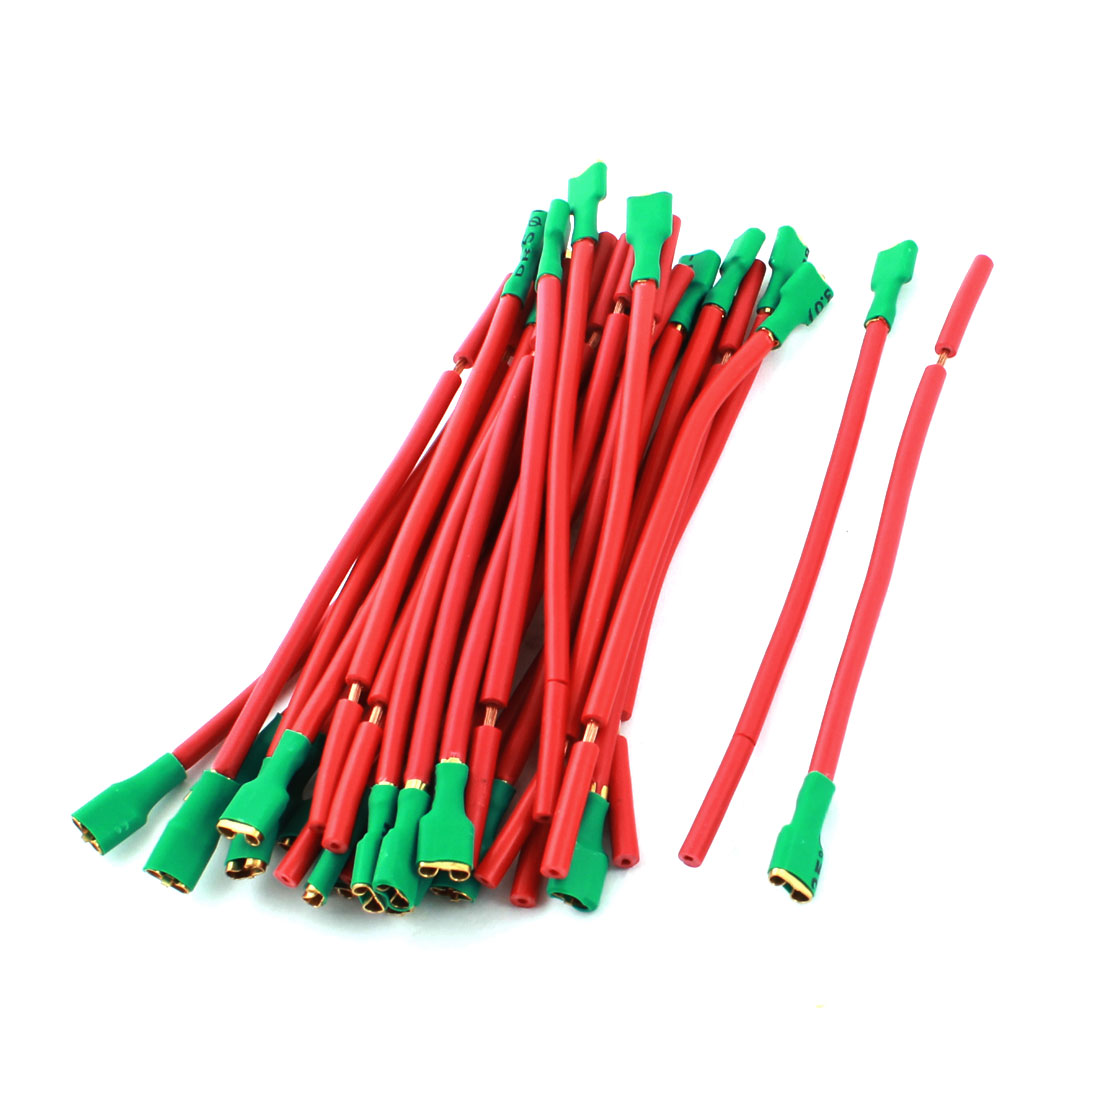 30Pcs Red Green Female Terminal Cable Wire Connector for Car Audio Speaker